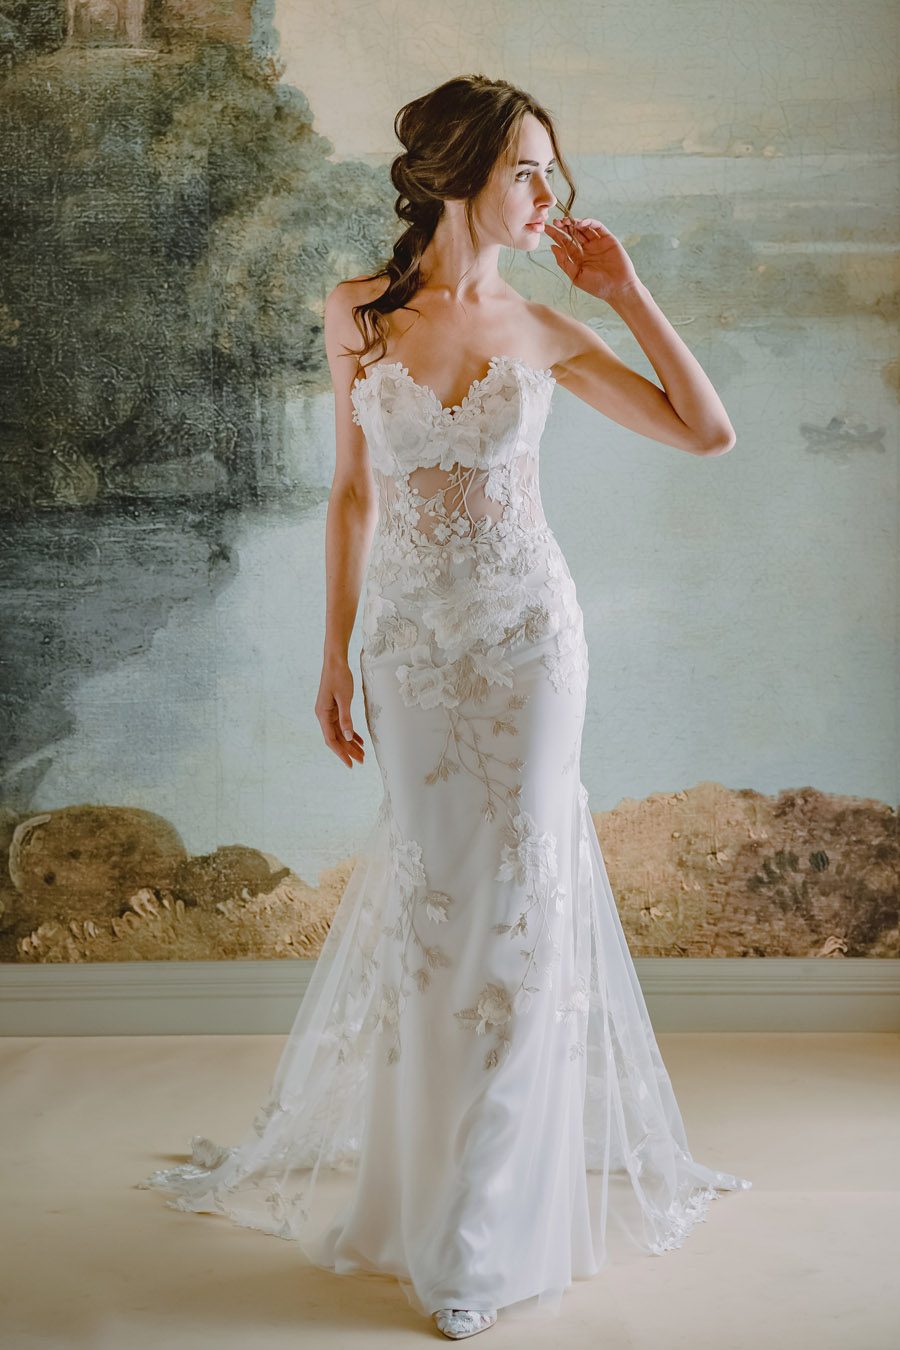 Claire Pettibone 2020 wedding dress ideas (7)